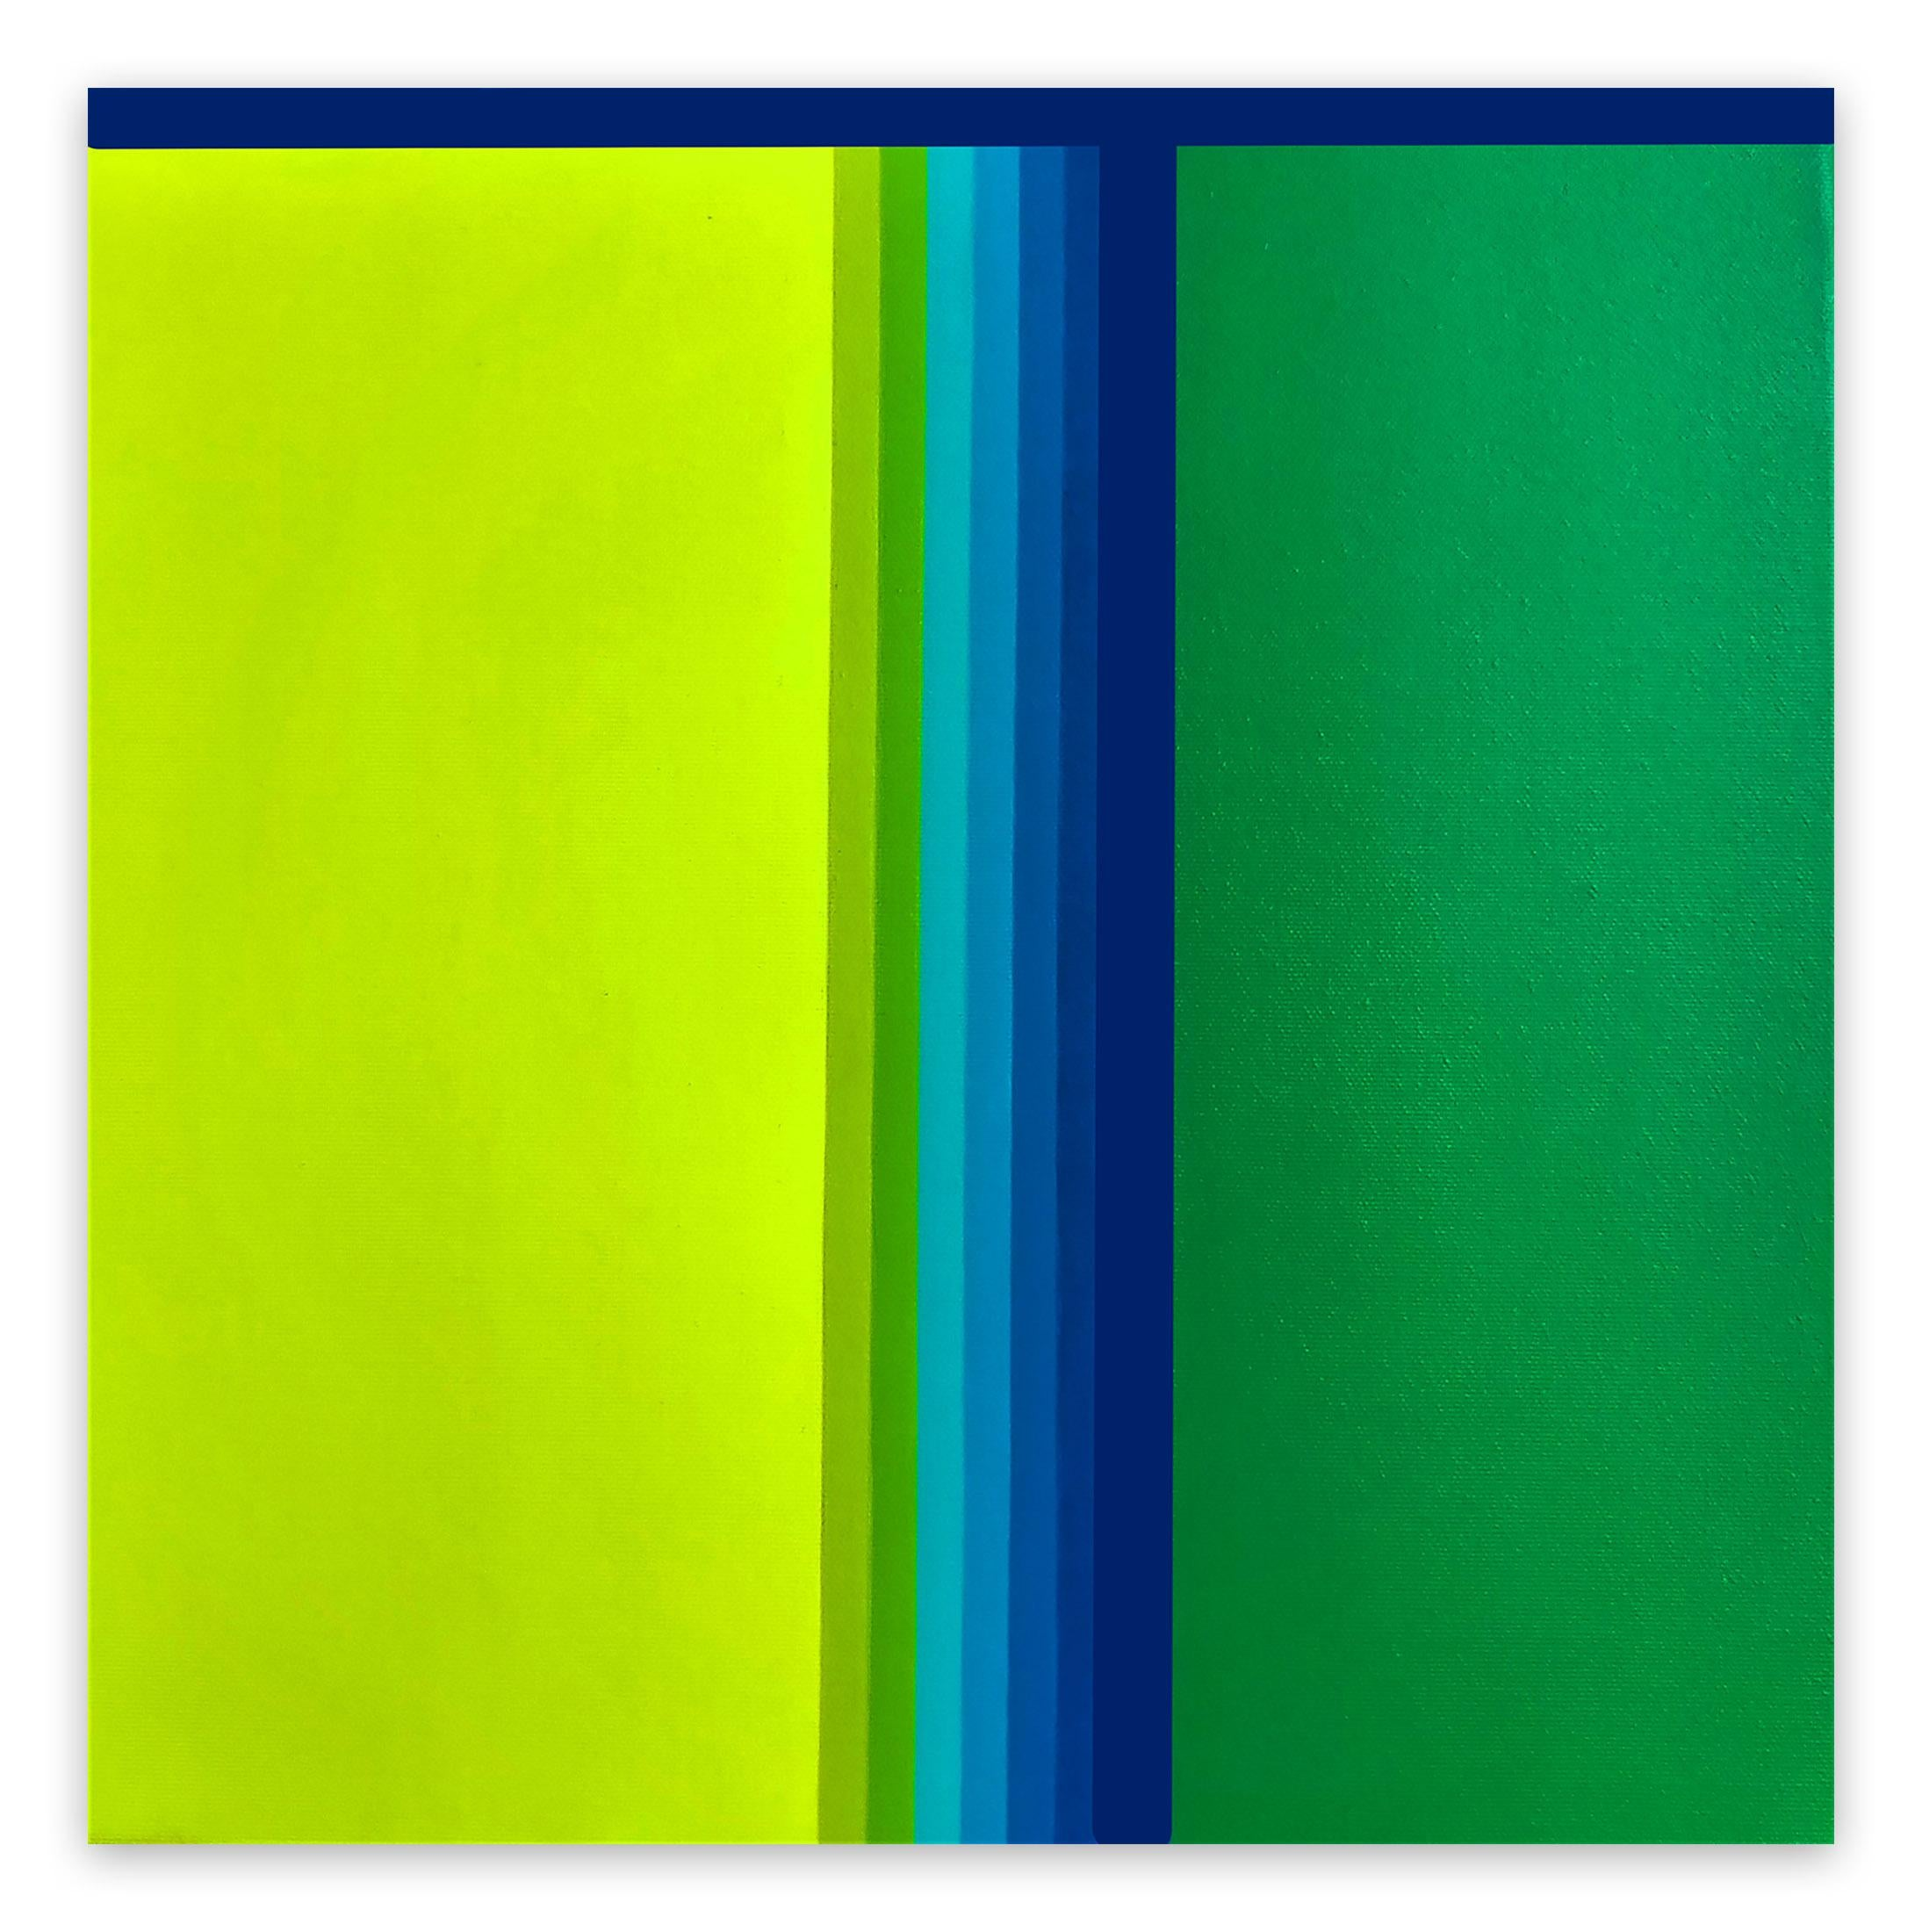 Green gradient (Abstract painting)